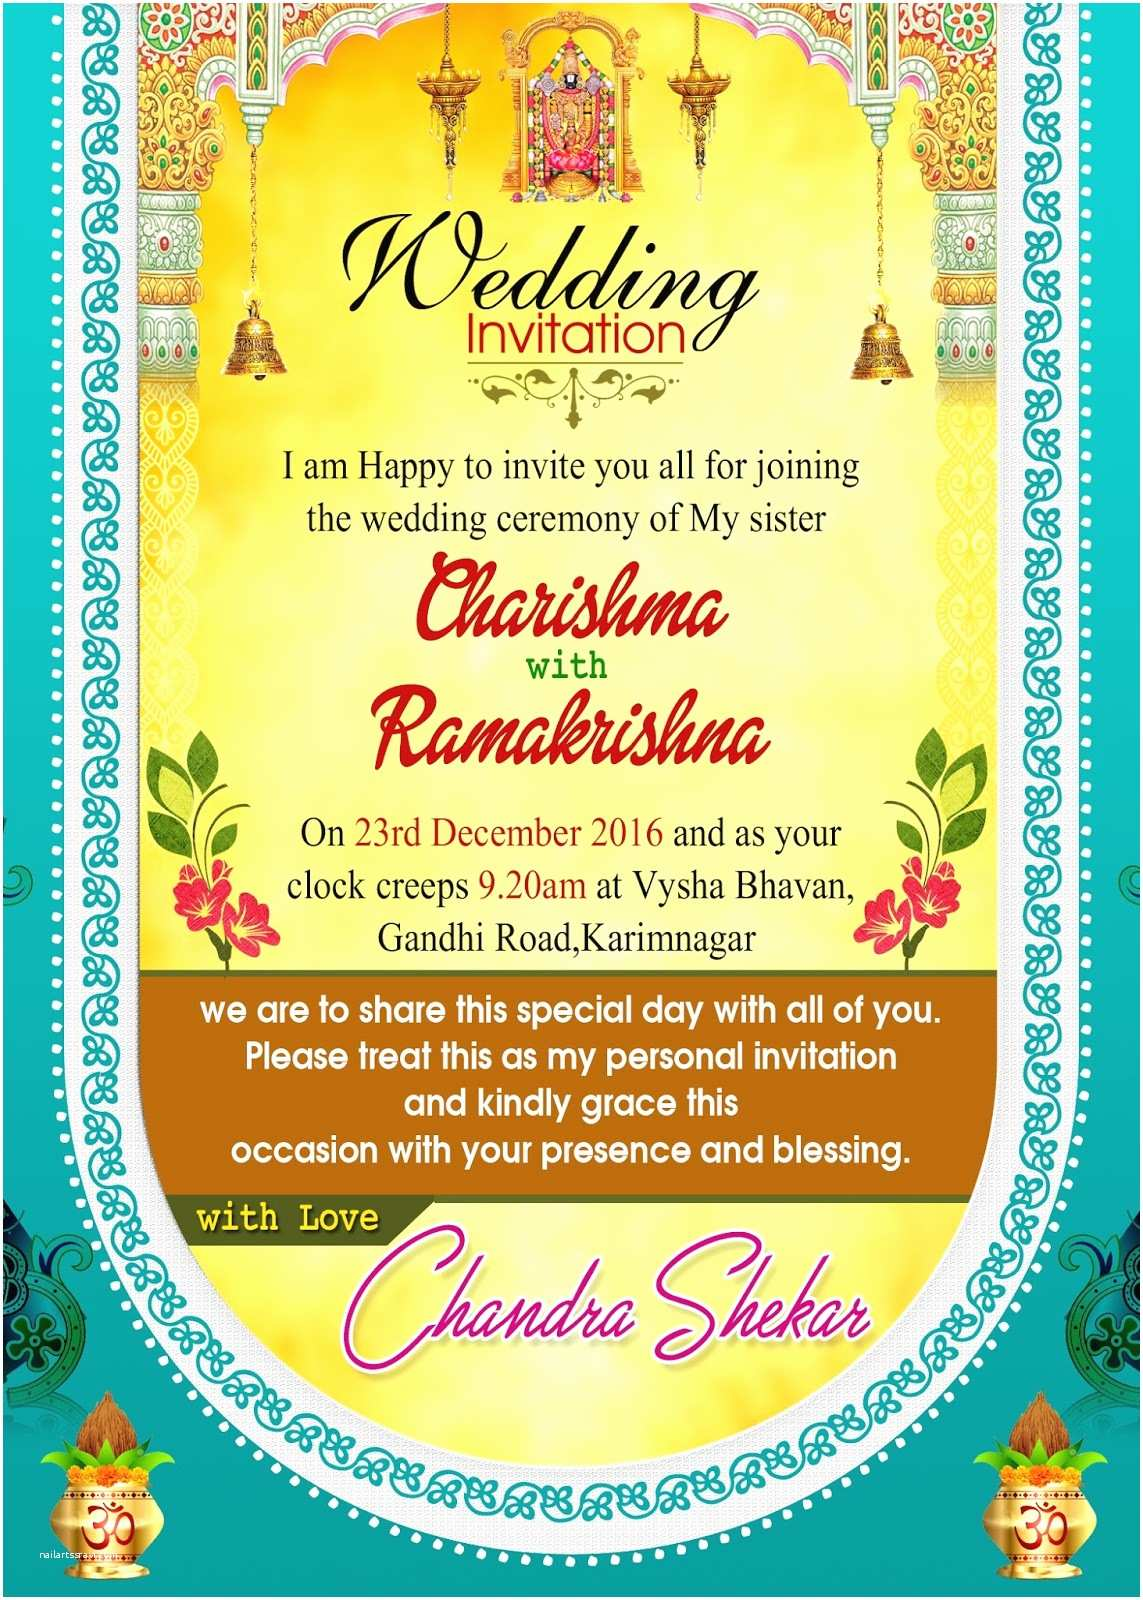 Indian Wedding Invitation Card Maker software Free Download Indian Wedding Invitation Wordings Psd Template Free for